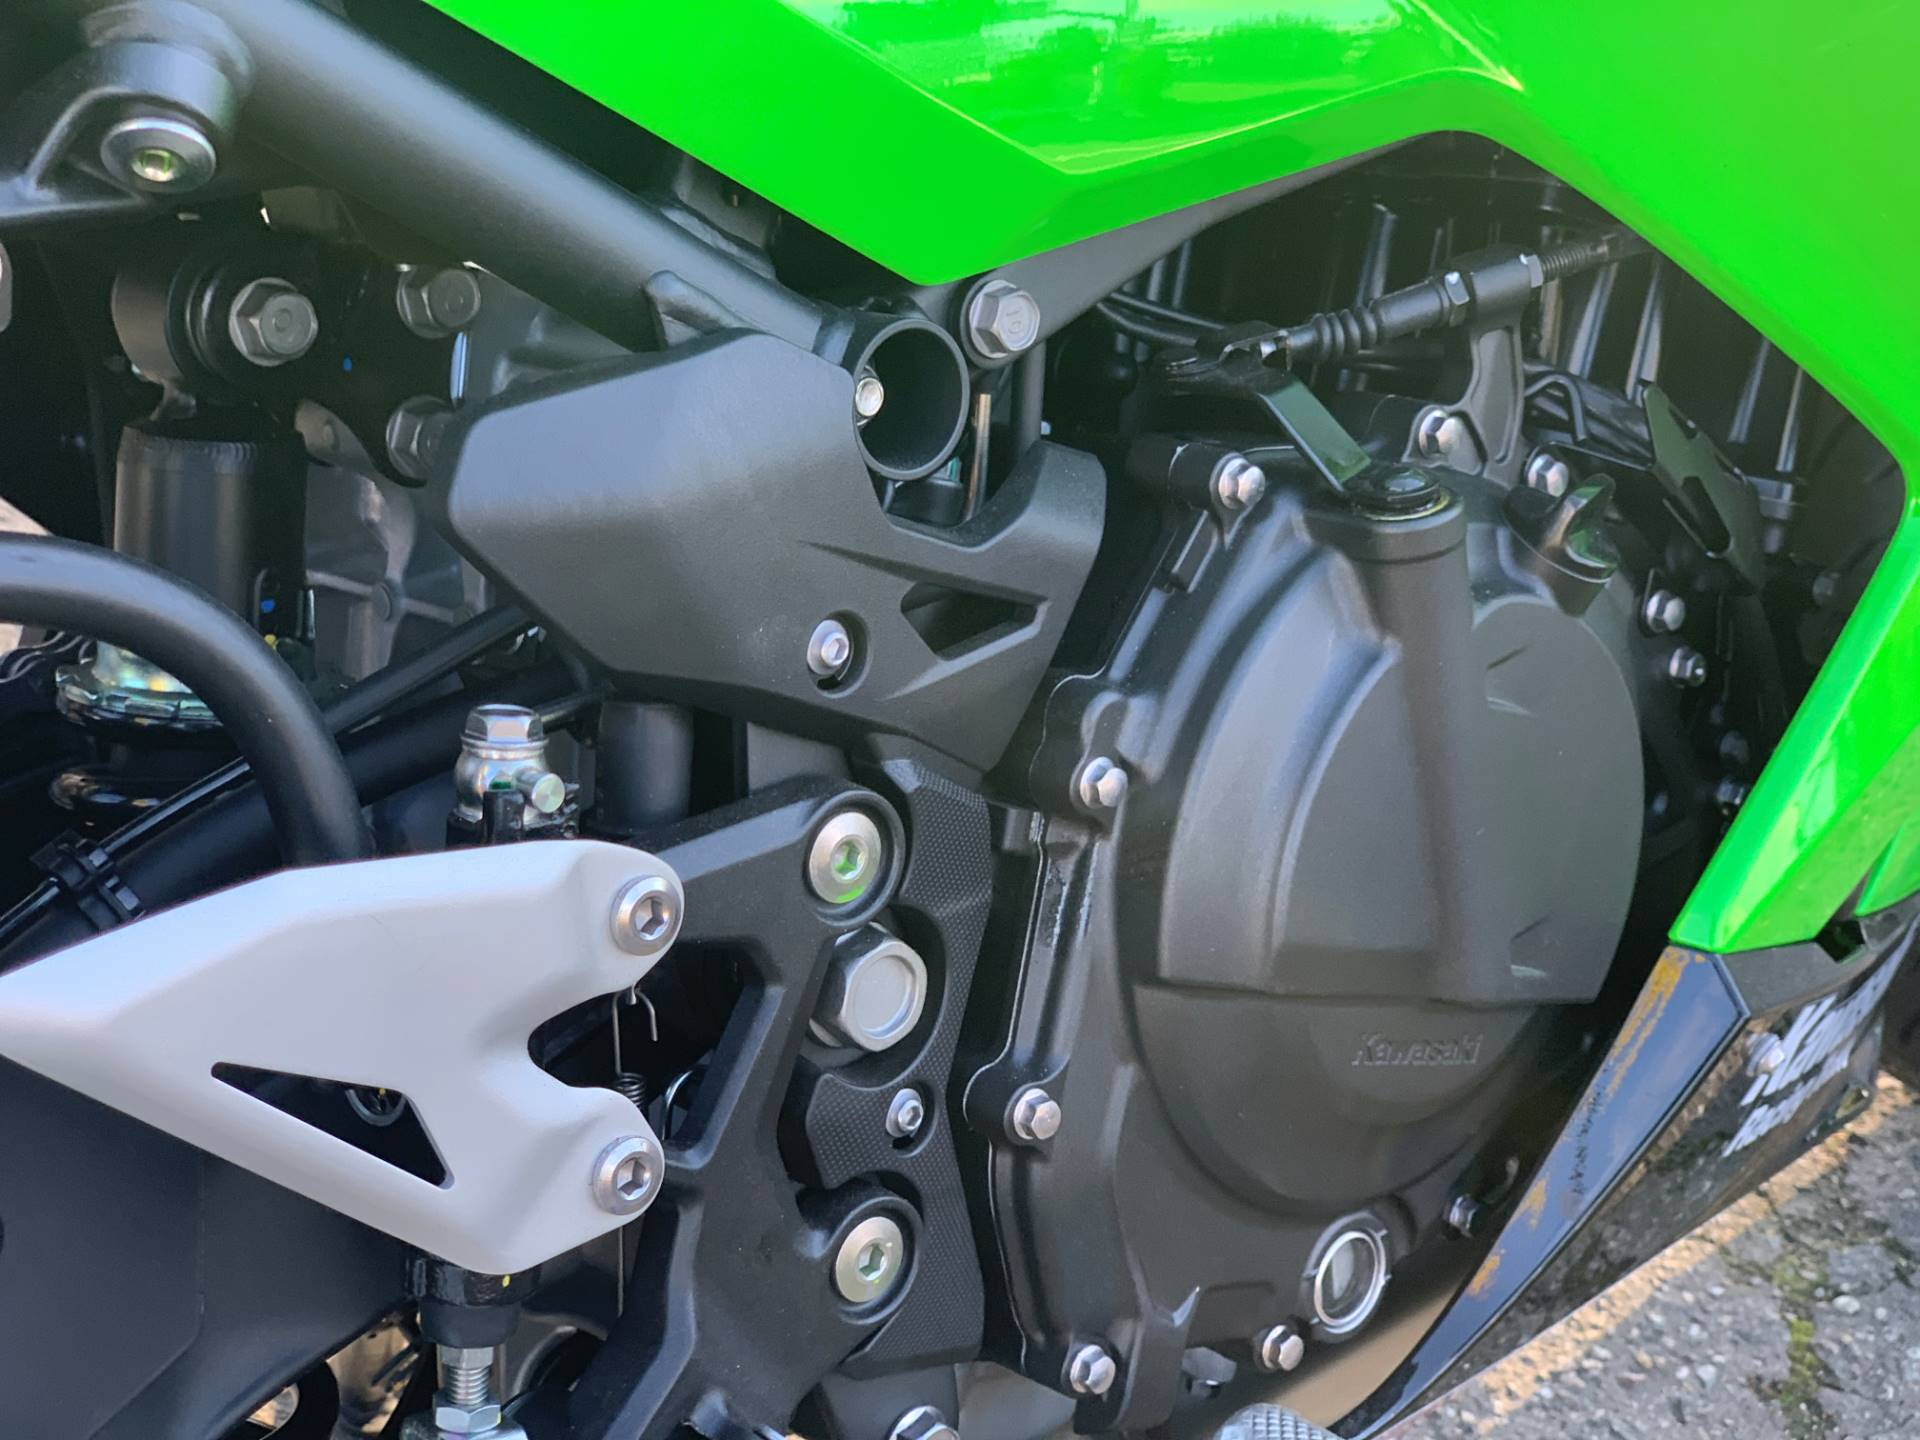 2020 Kawasaki Ninja 400 ABS KRT Edition in Bellevue, Washington - Photo 14